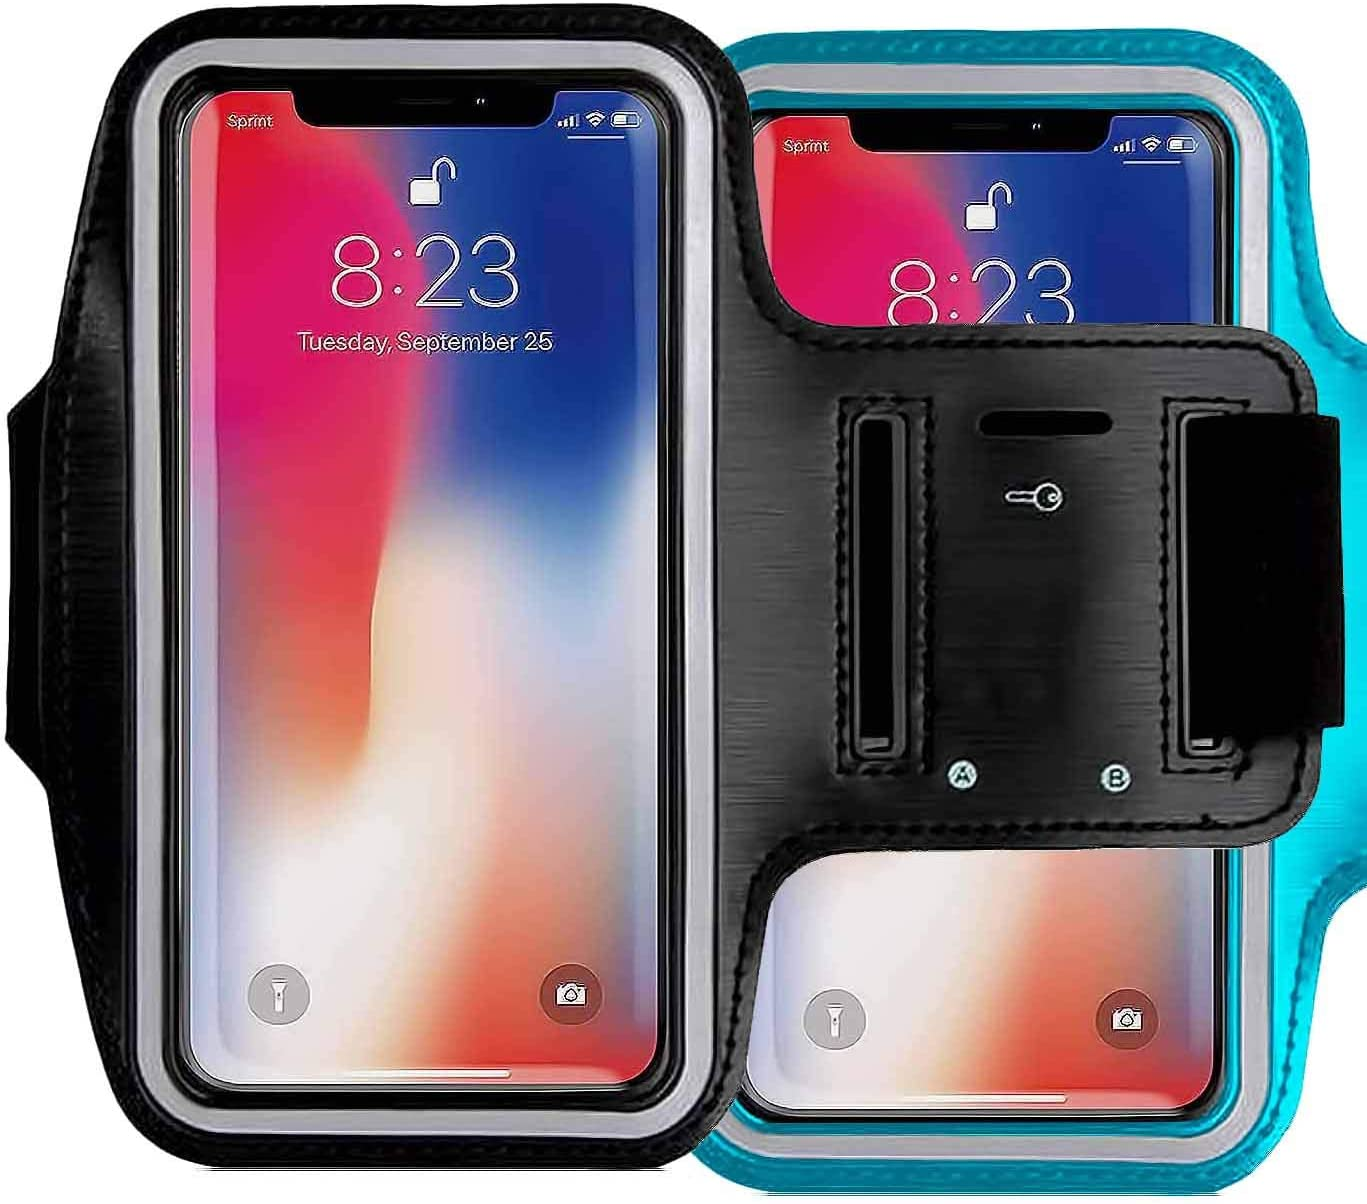 2Pack CaseHQ Water Resistant Cell Phone Armband Case Compatible with iPhone 12 iPhone 12 Mini iPhone 12 Pro Max iPhone 11, 11 Pro, 11 Pro Max, X, Xs Max, Xr, 8, 7, 6 Plus. Adjustable Band & Key Slot